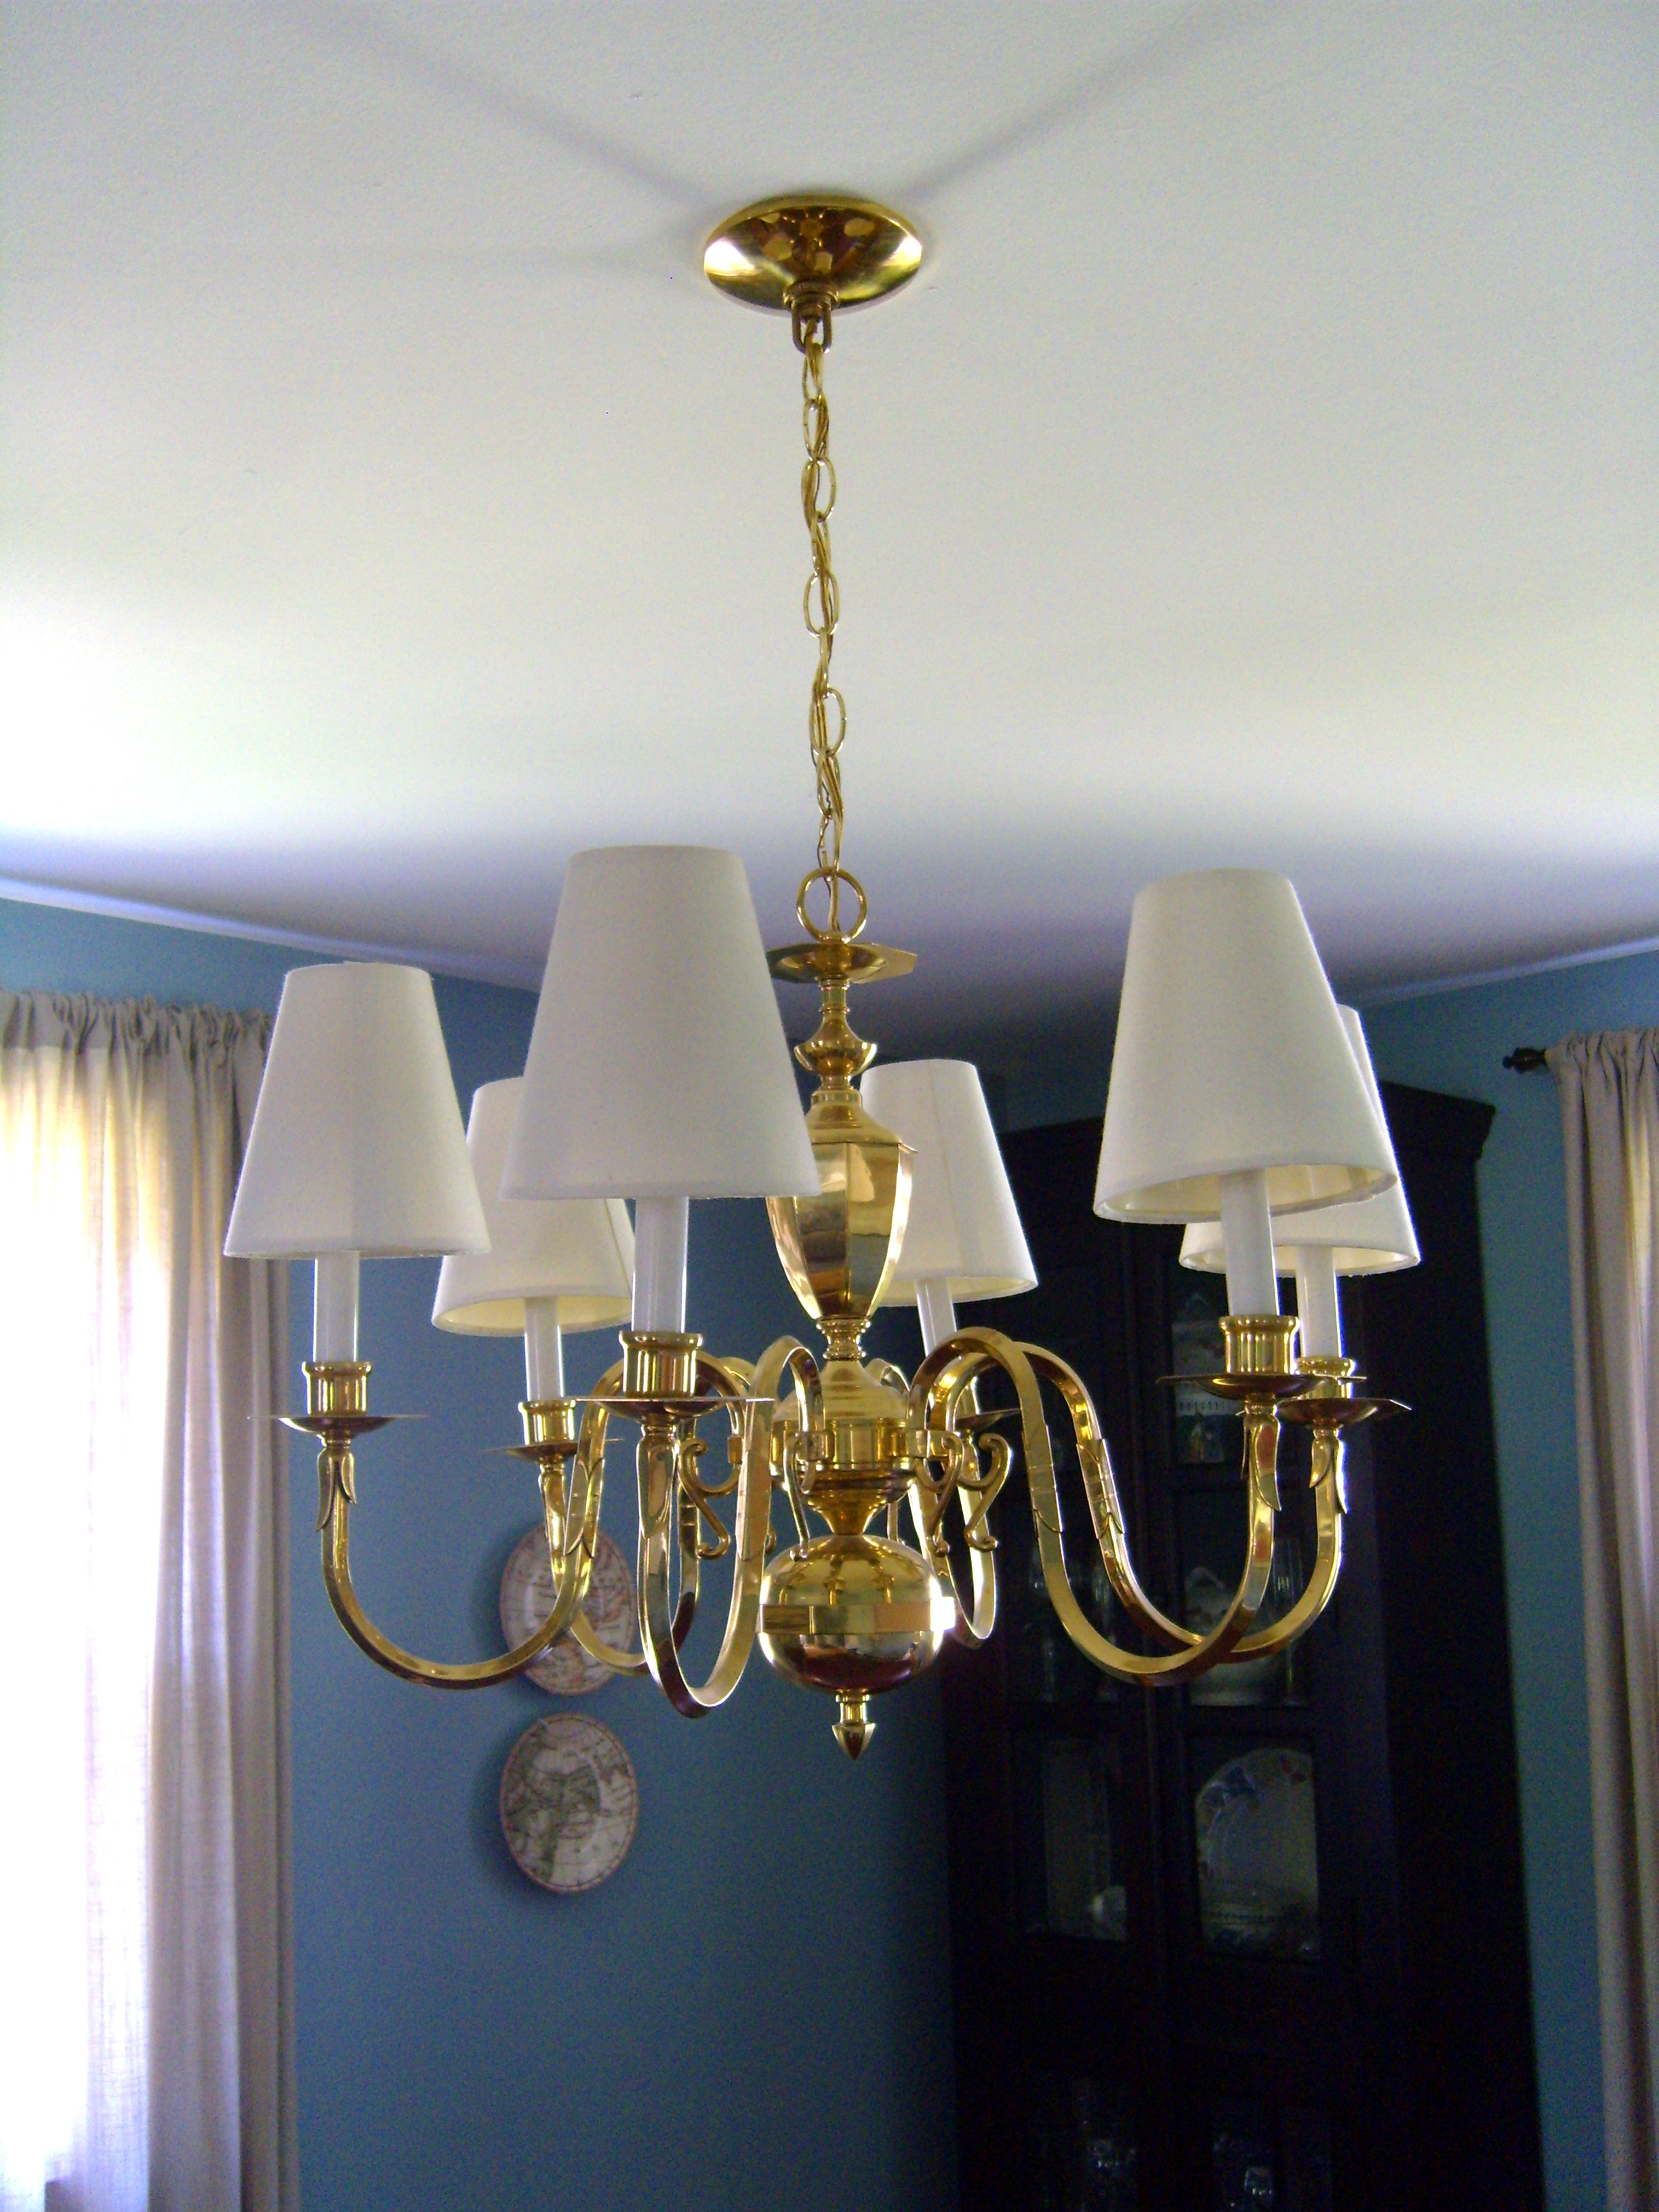 Trendy Drum Lamp Shades For Chandeliers With Furniture : Small Drum Lamp Shades Chandelier Saving Space Mini (View 7 of 20)